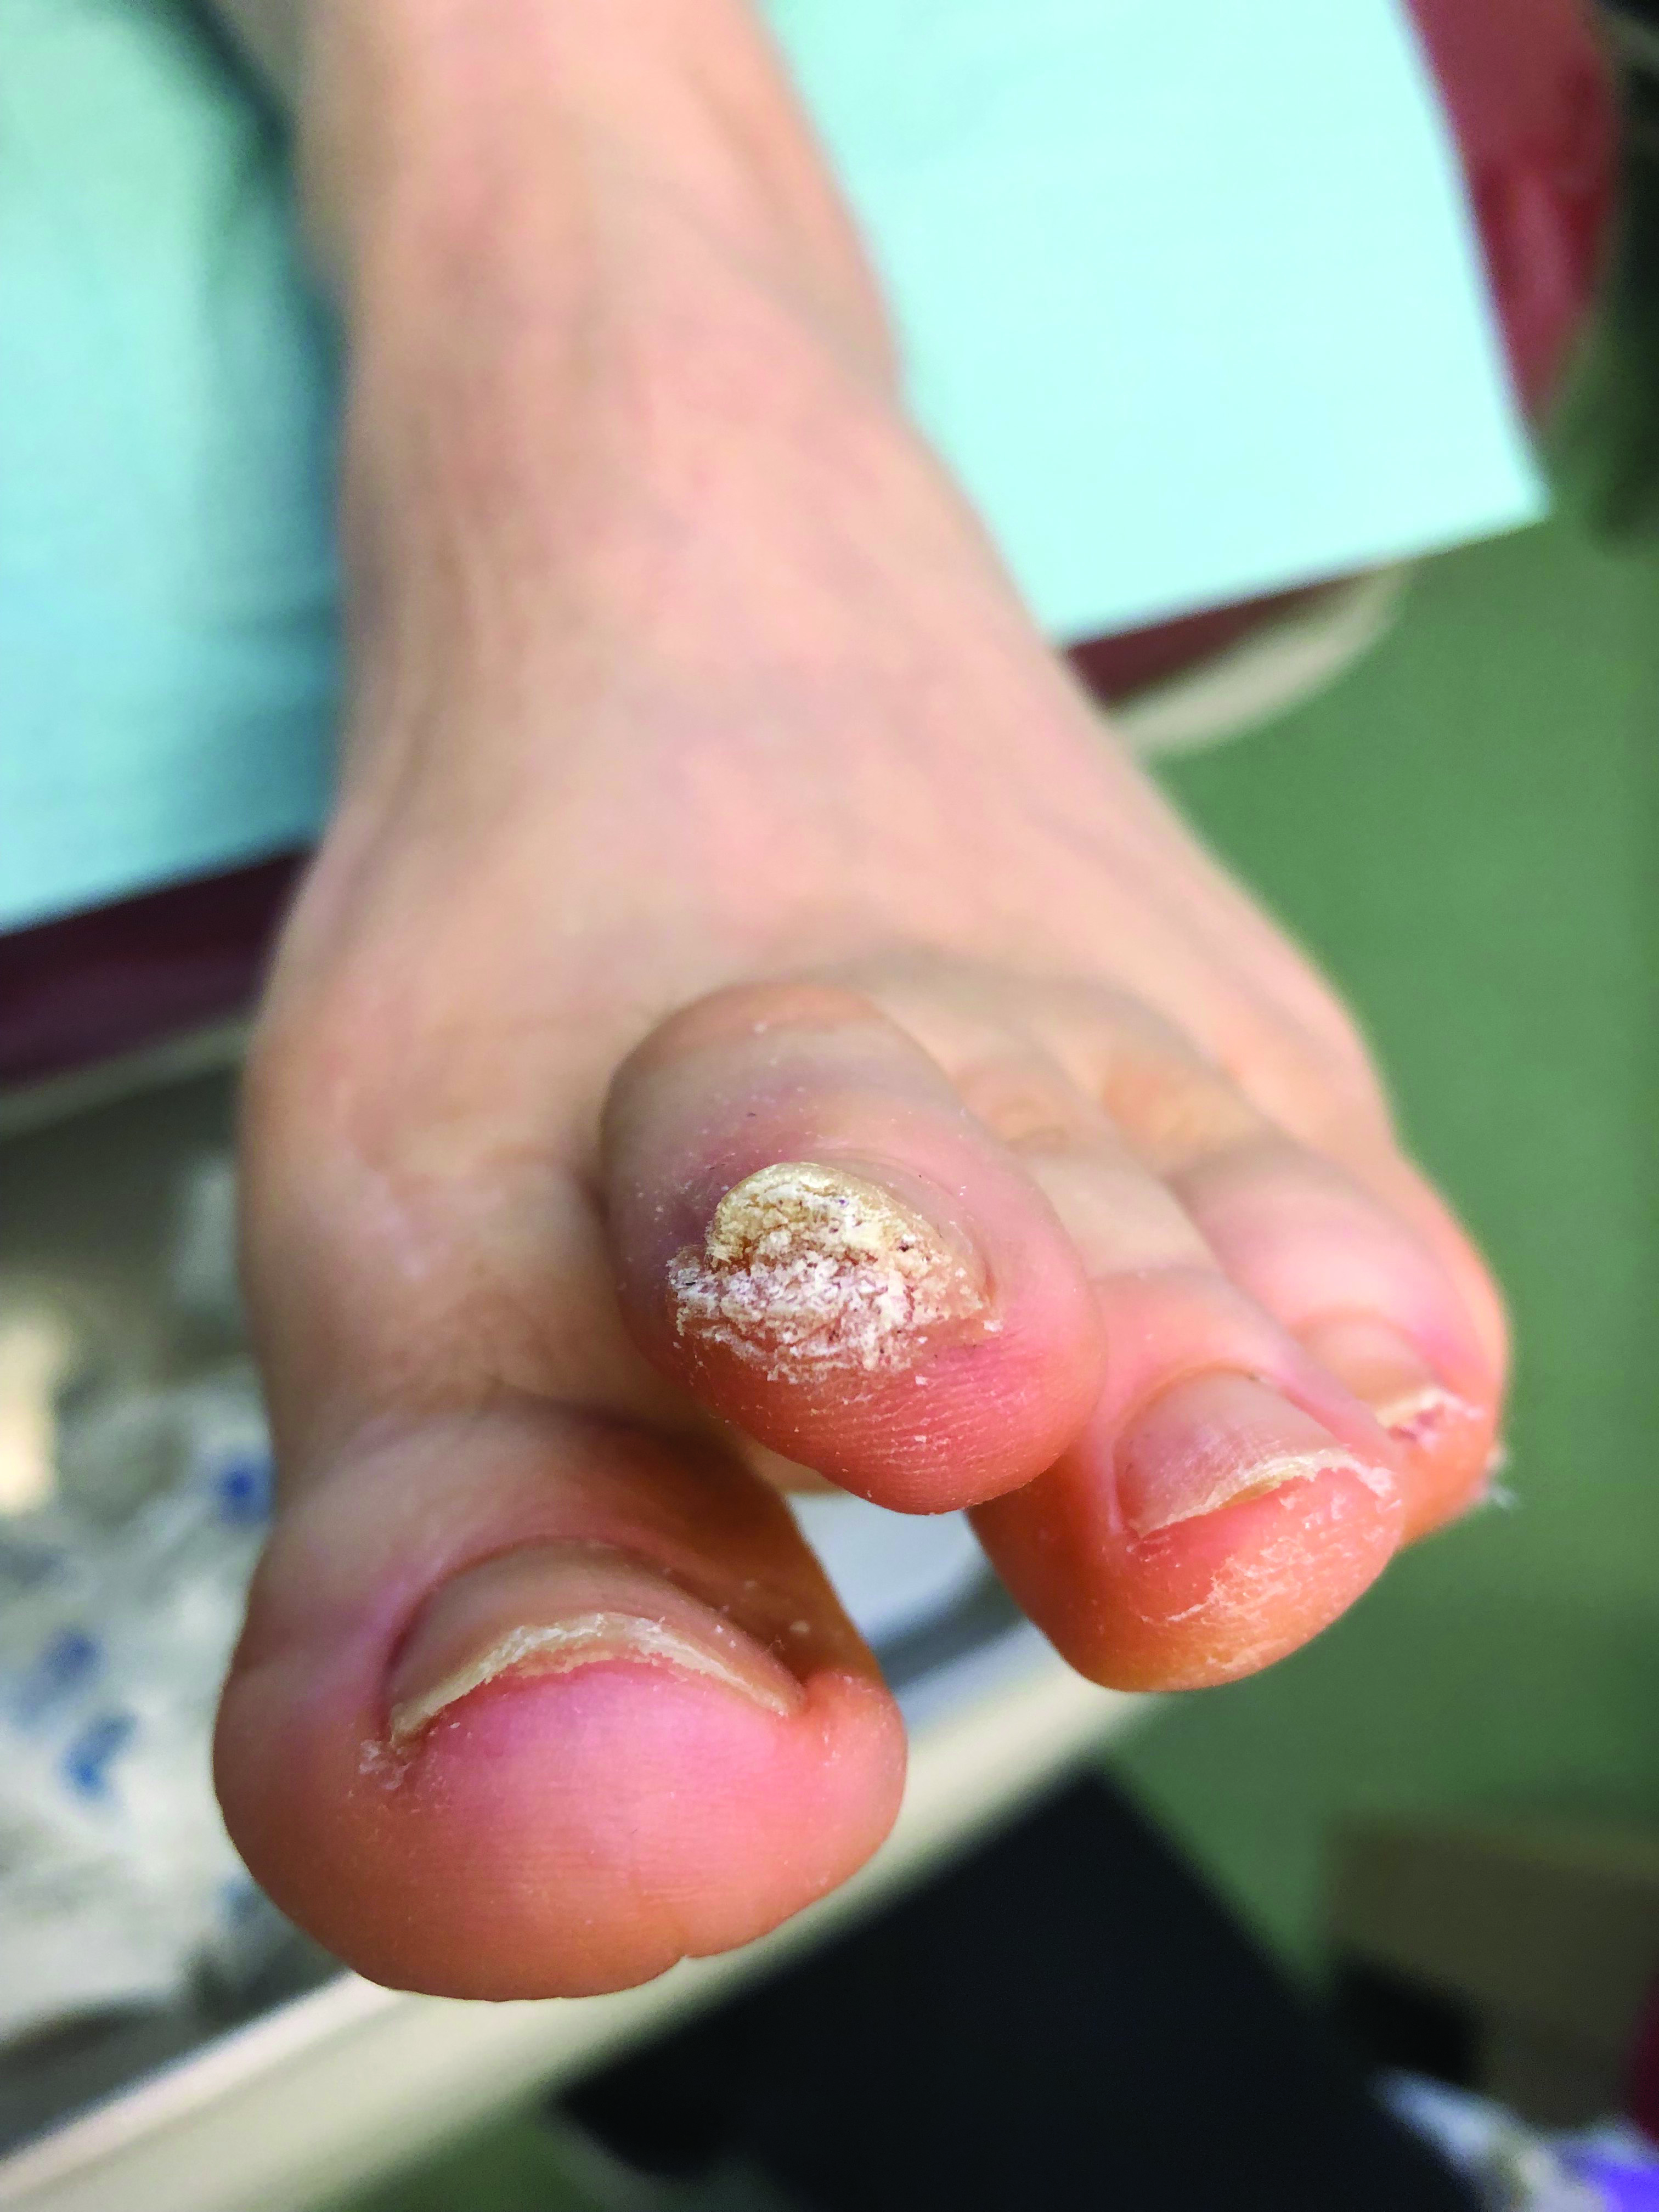 Here one can see an example of a subungual wart. Both an epidermal abrasion and a transiently impaired immune system must have been present to allow this lesion to form.